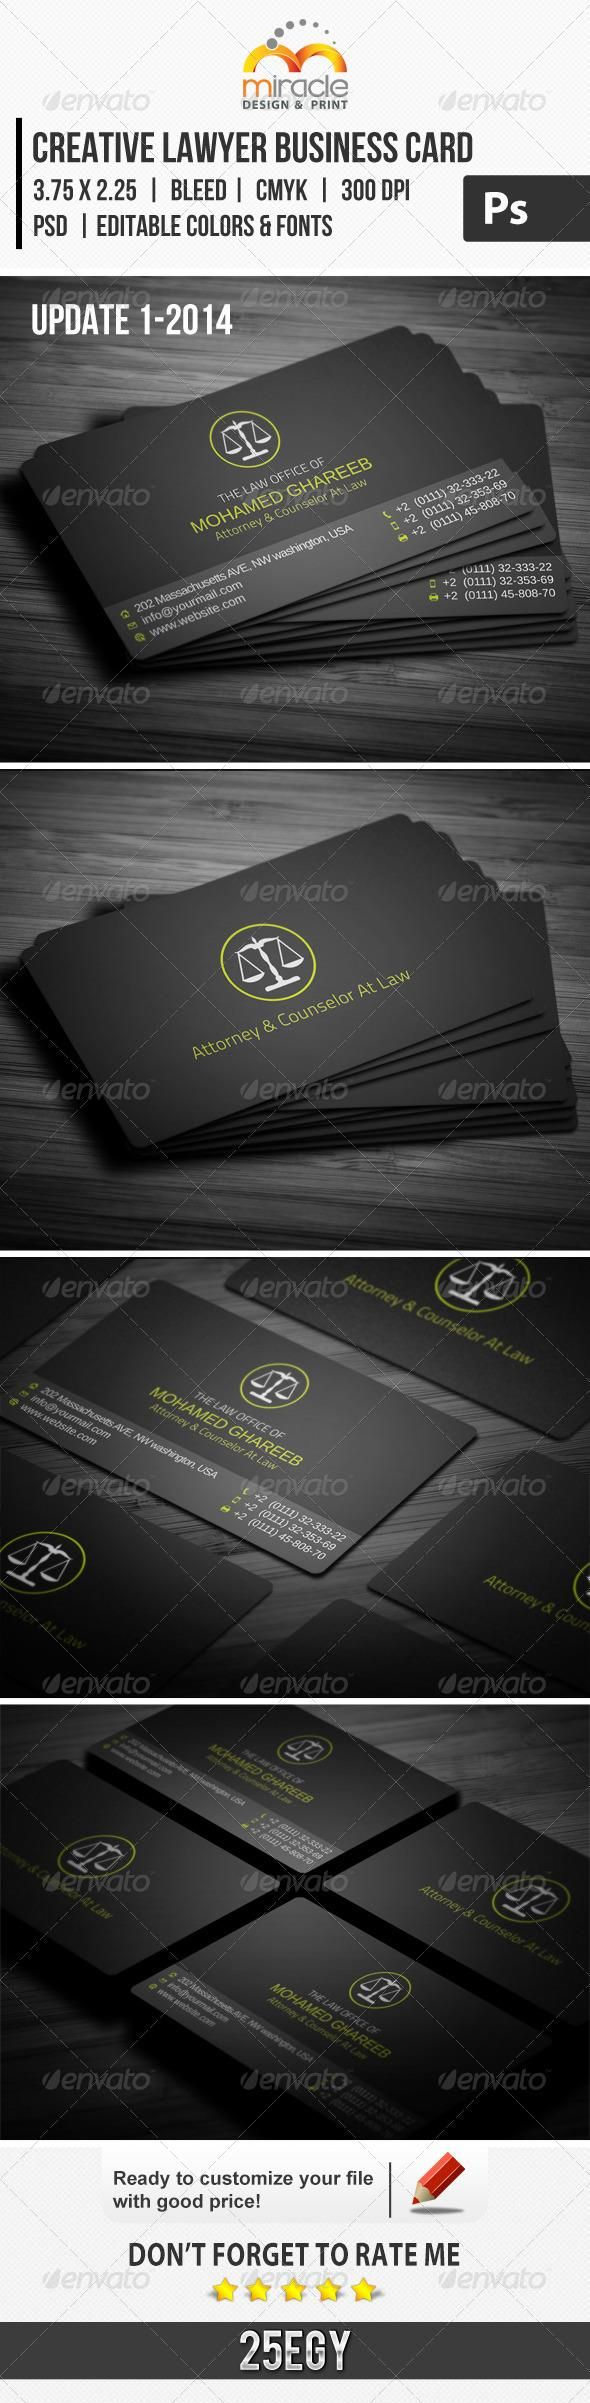 1661 best business card design images on pinterest cards file c creative lawyer business card magicingreecefo Image collections